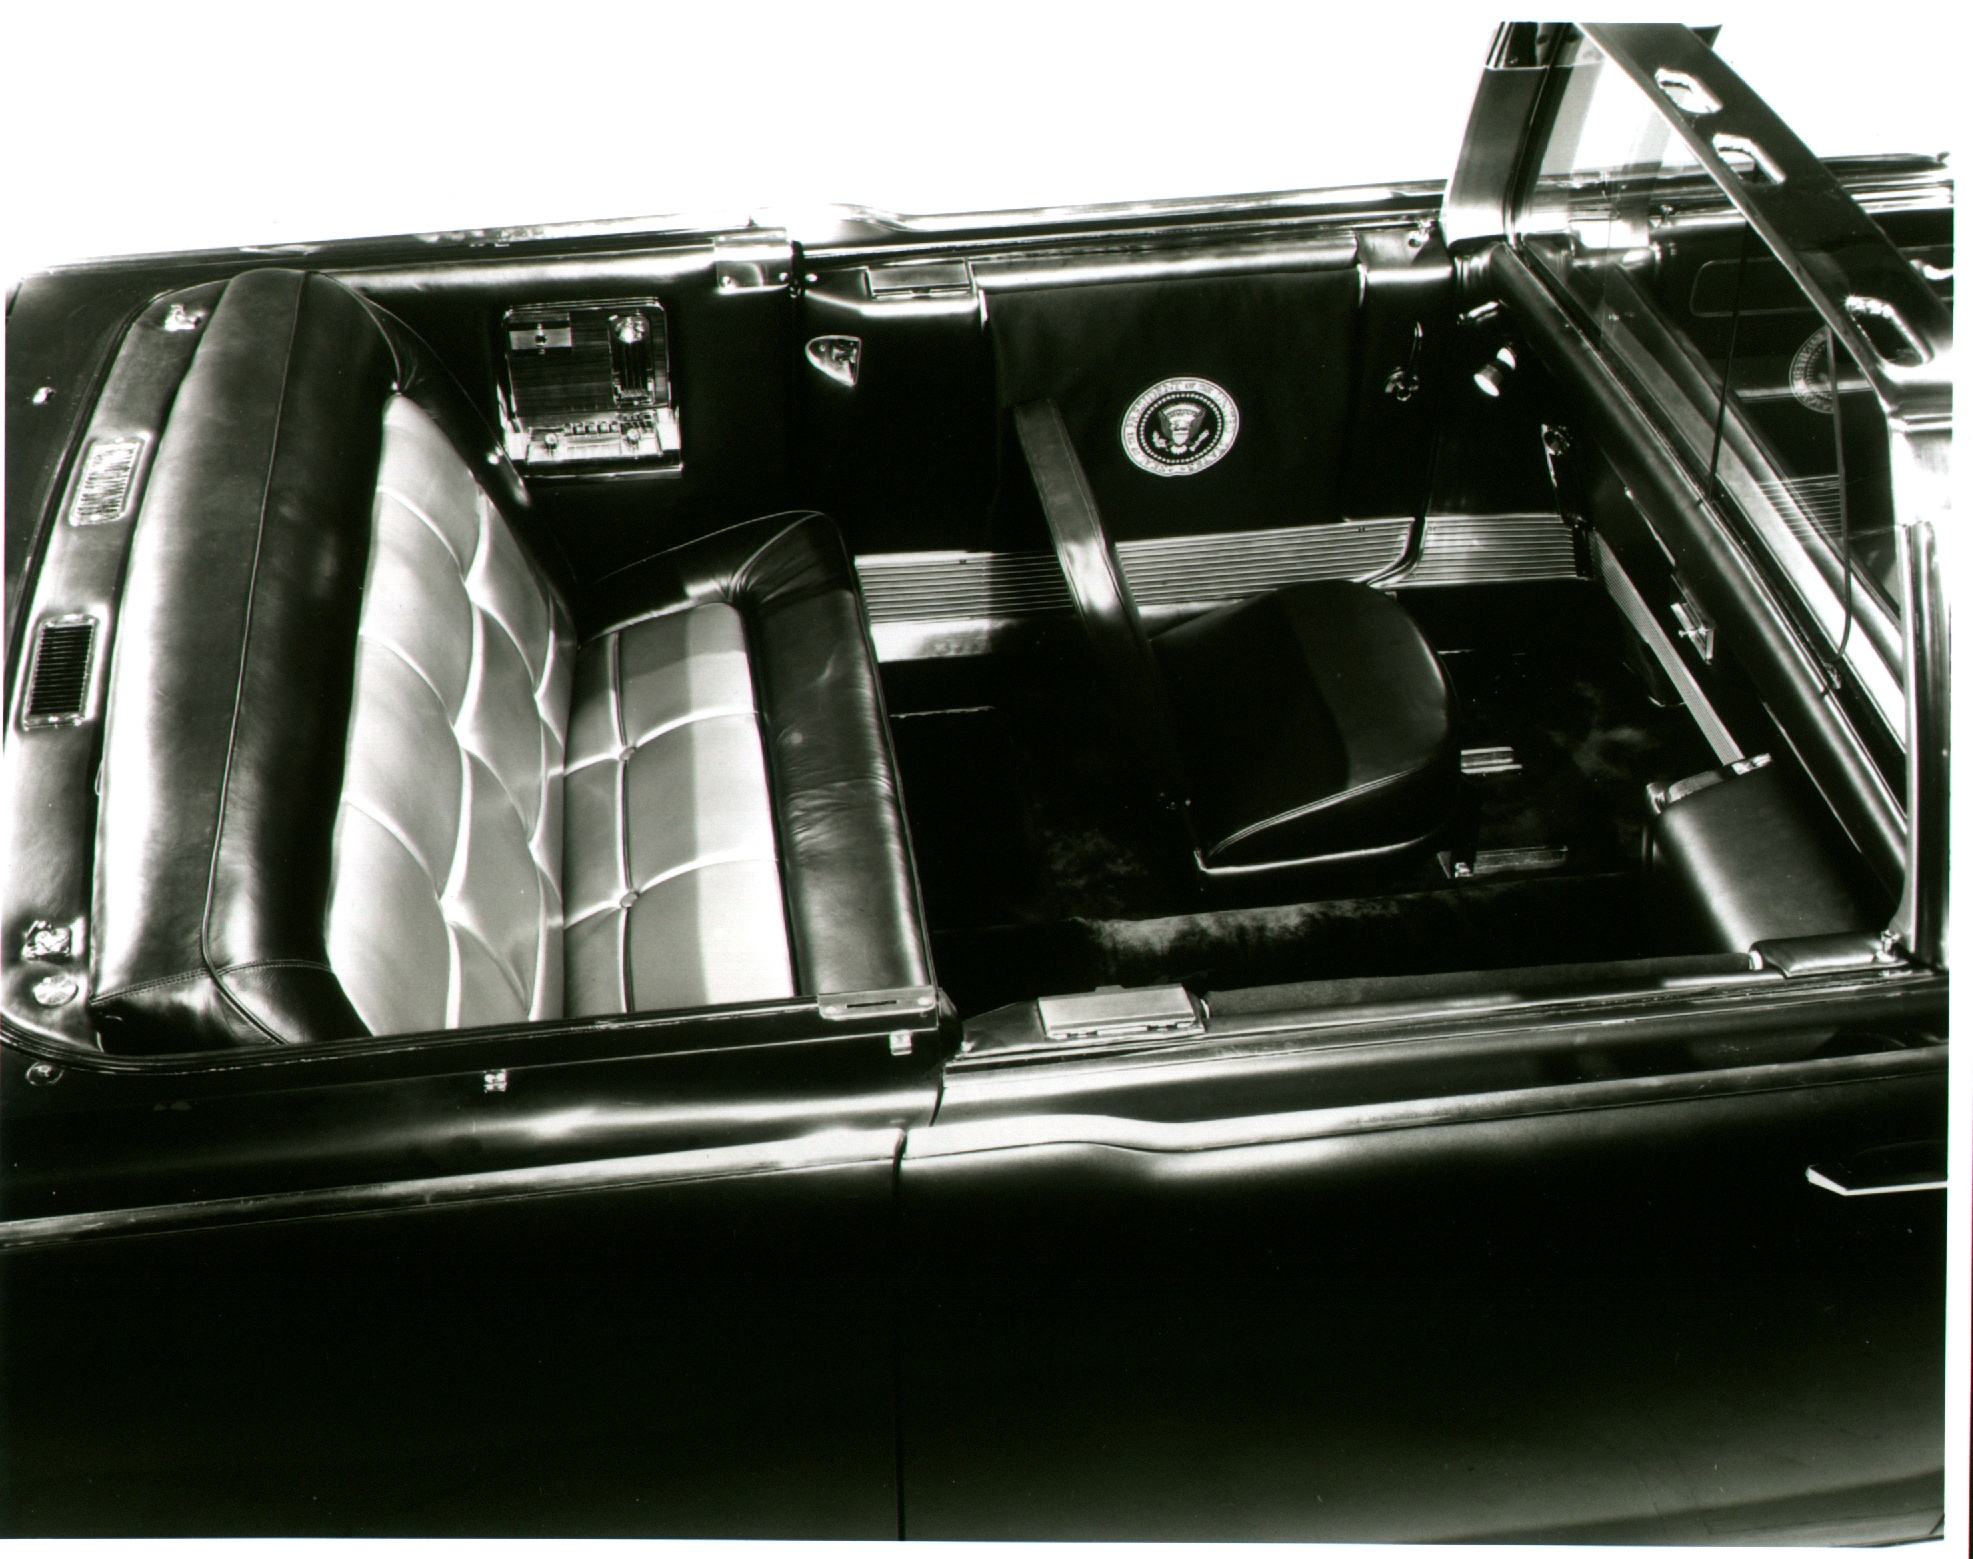 jfk assassination presidential limousine ss100x the privacy window